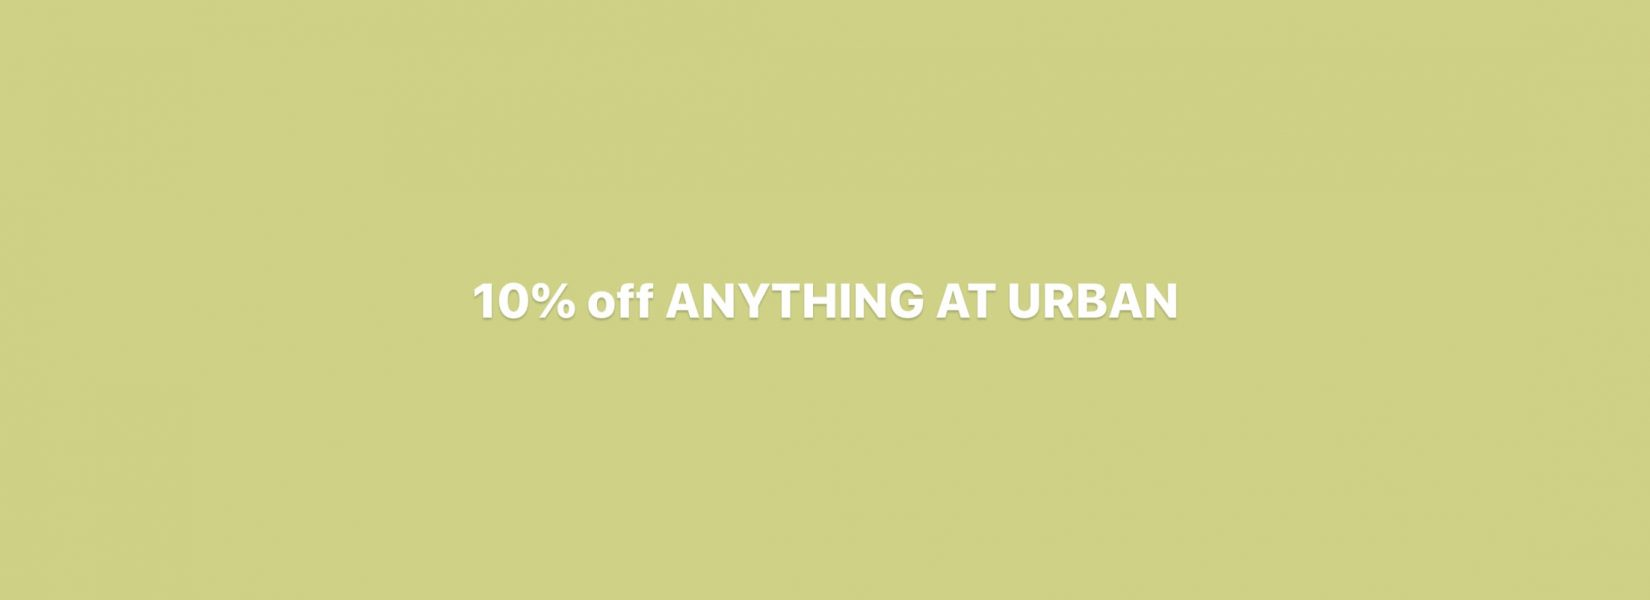 URBAN DISCOUNT: 10% OFF EVERYTHING